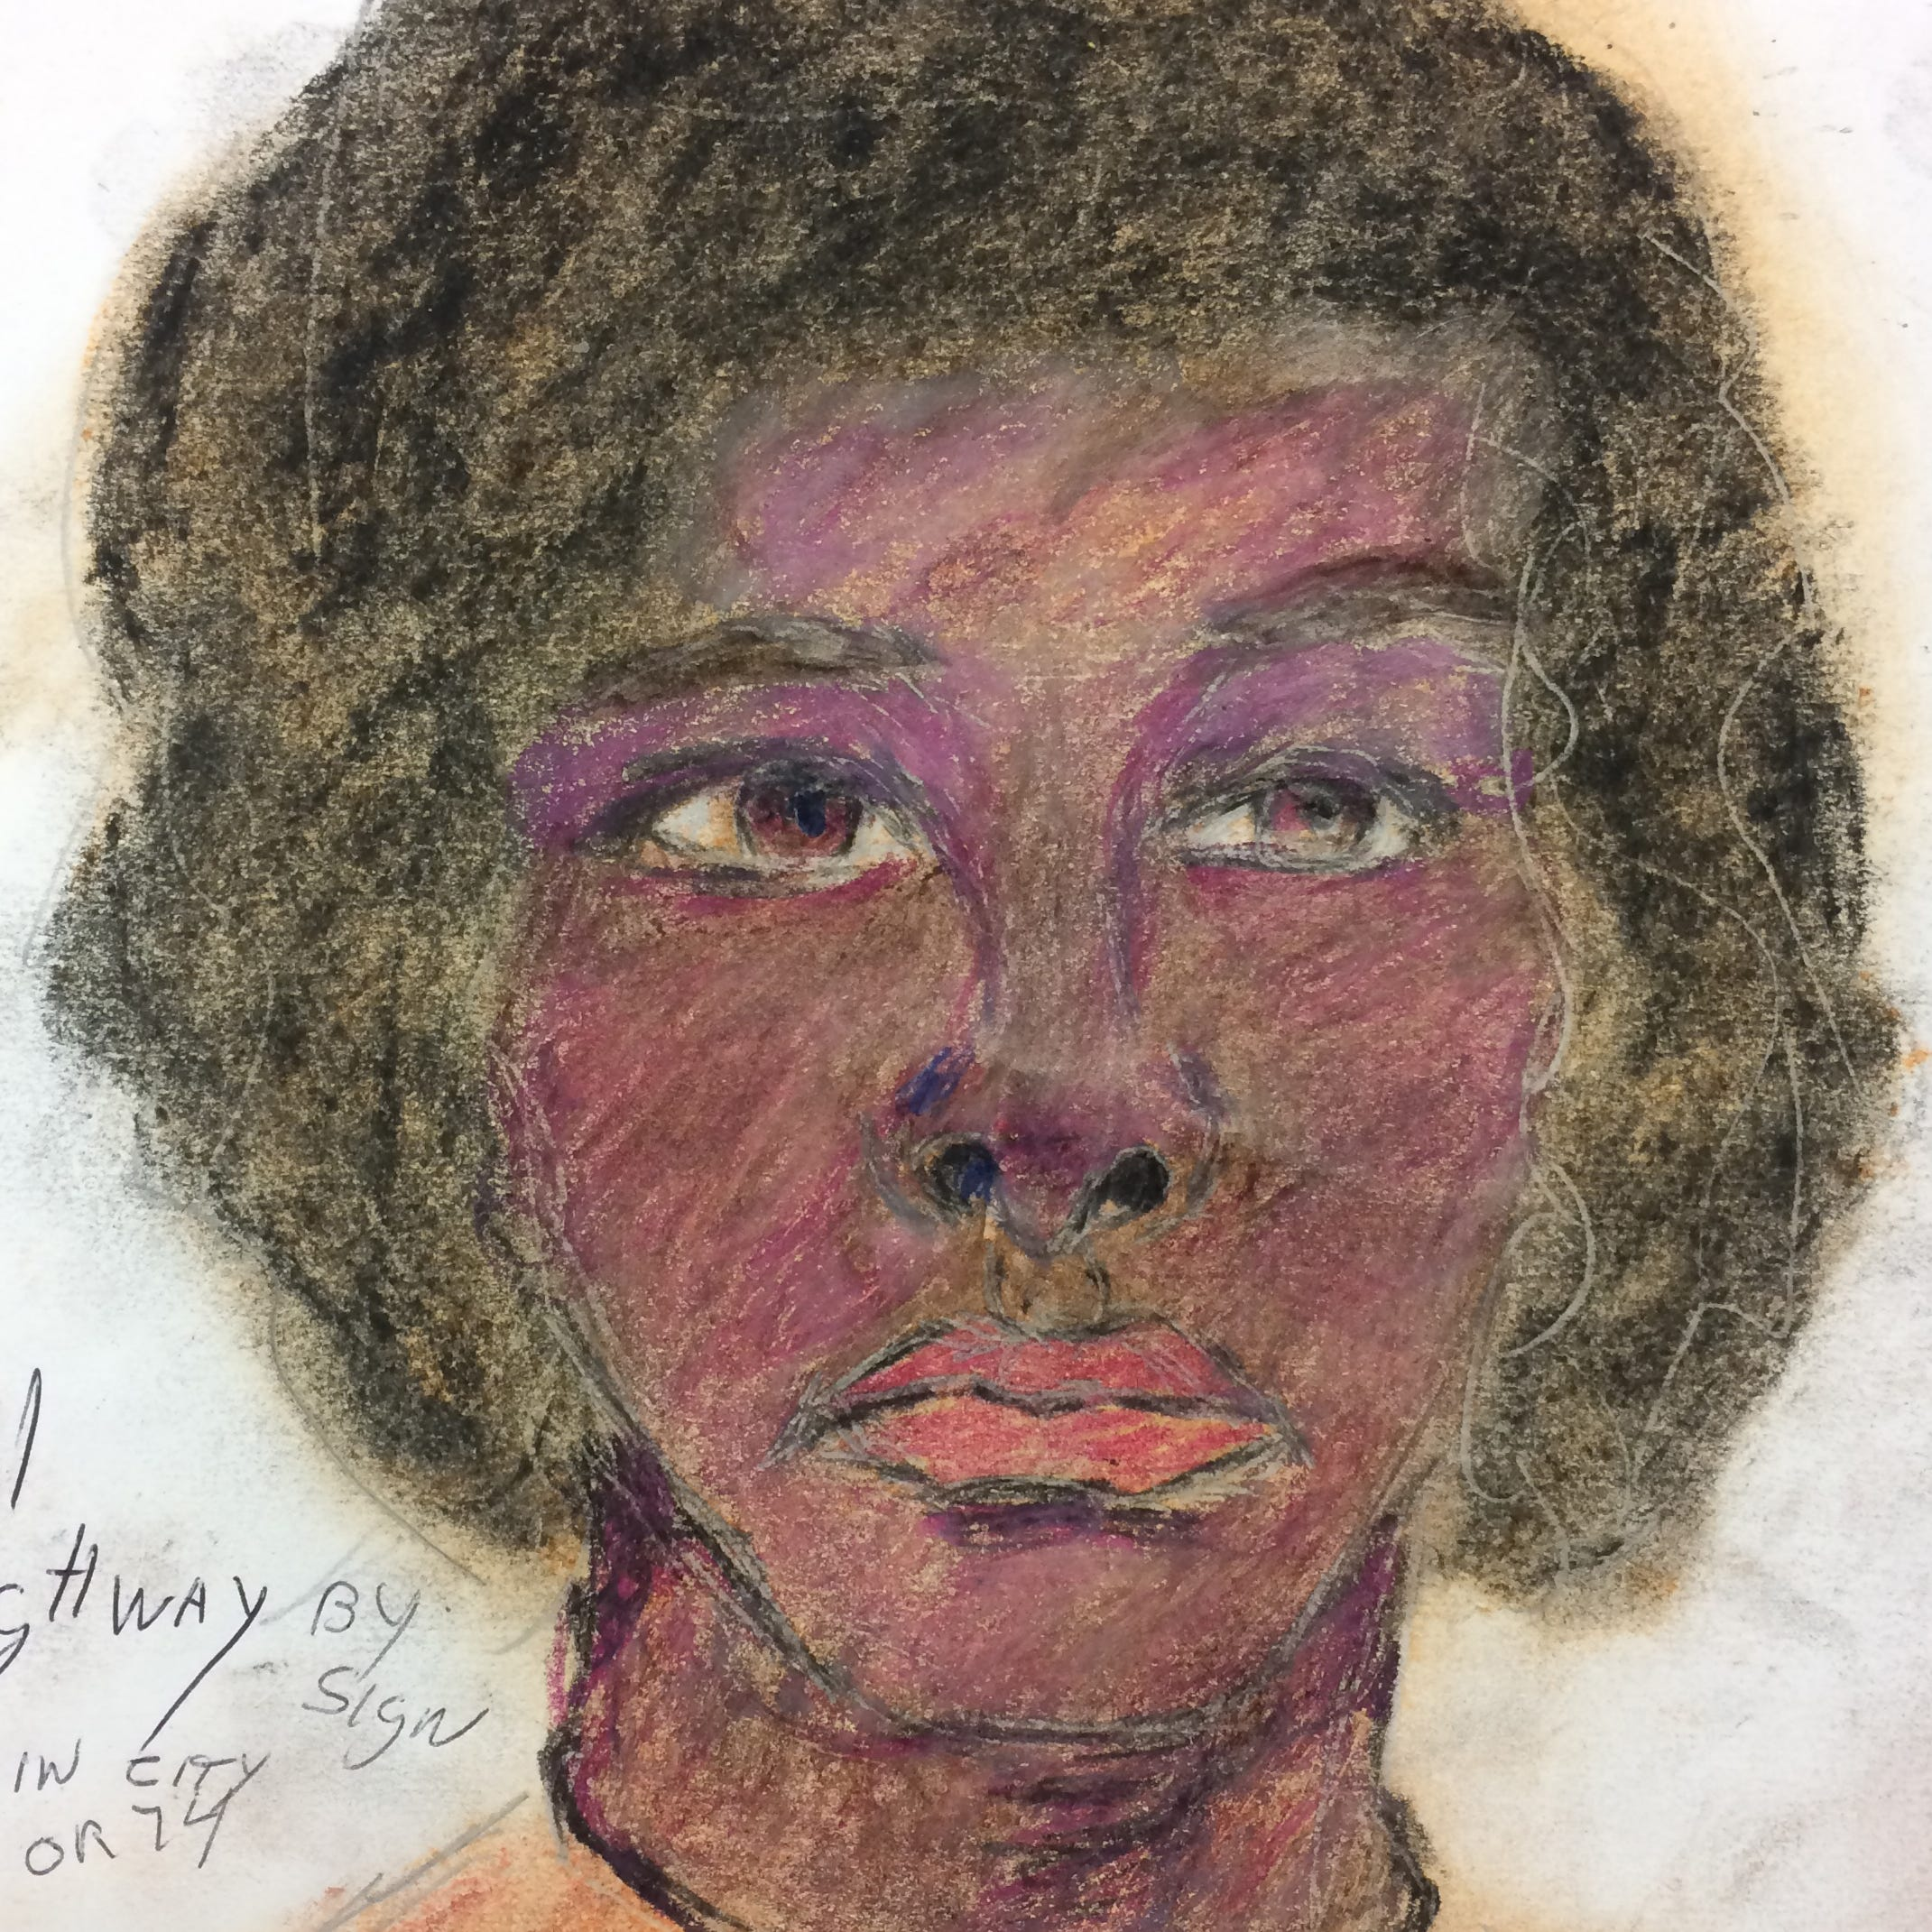 FBI releases sketches of unidentified victims drawn by the serial killer's own hand